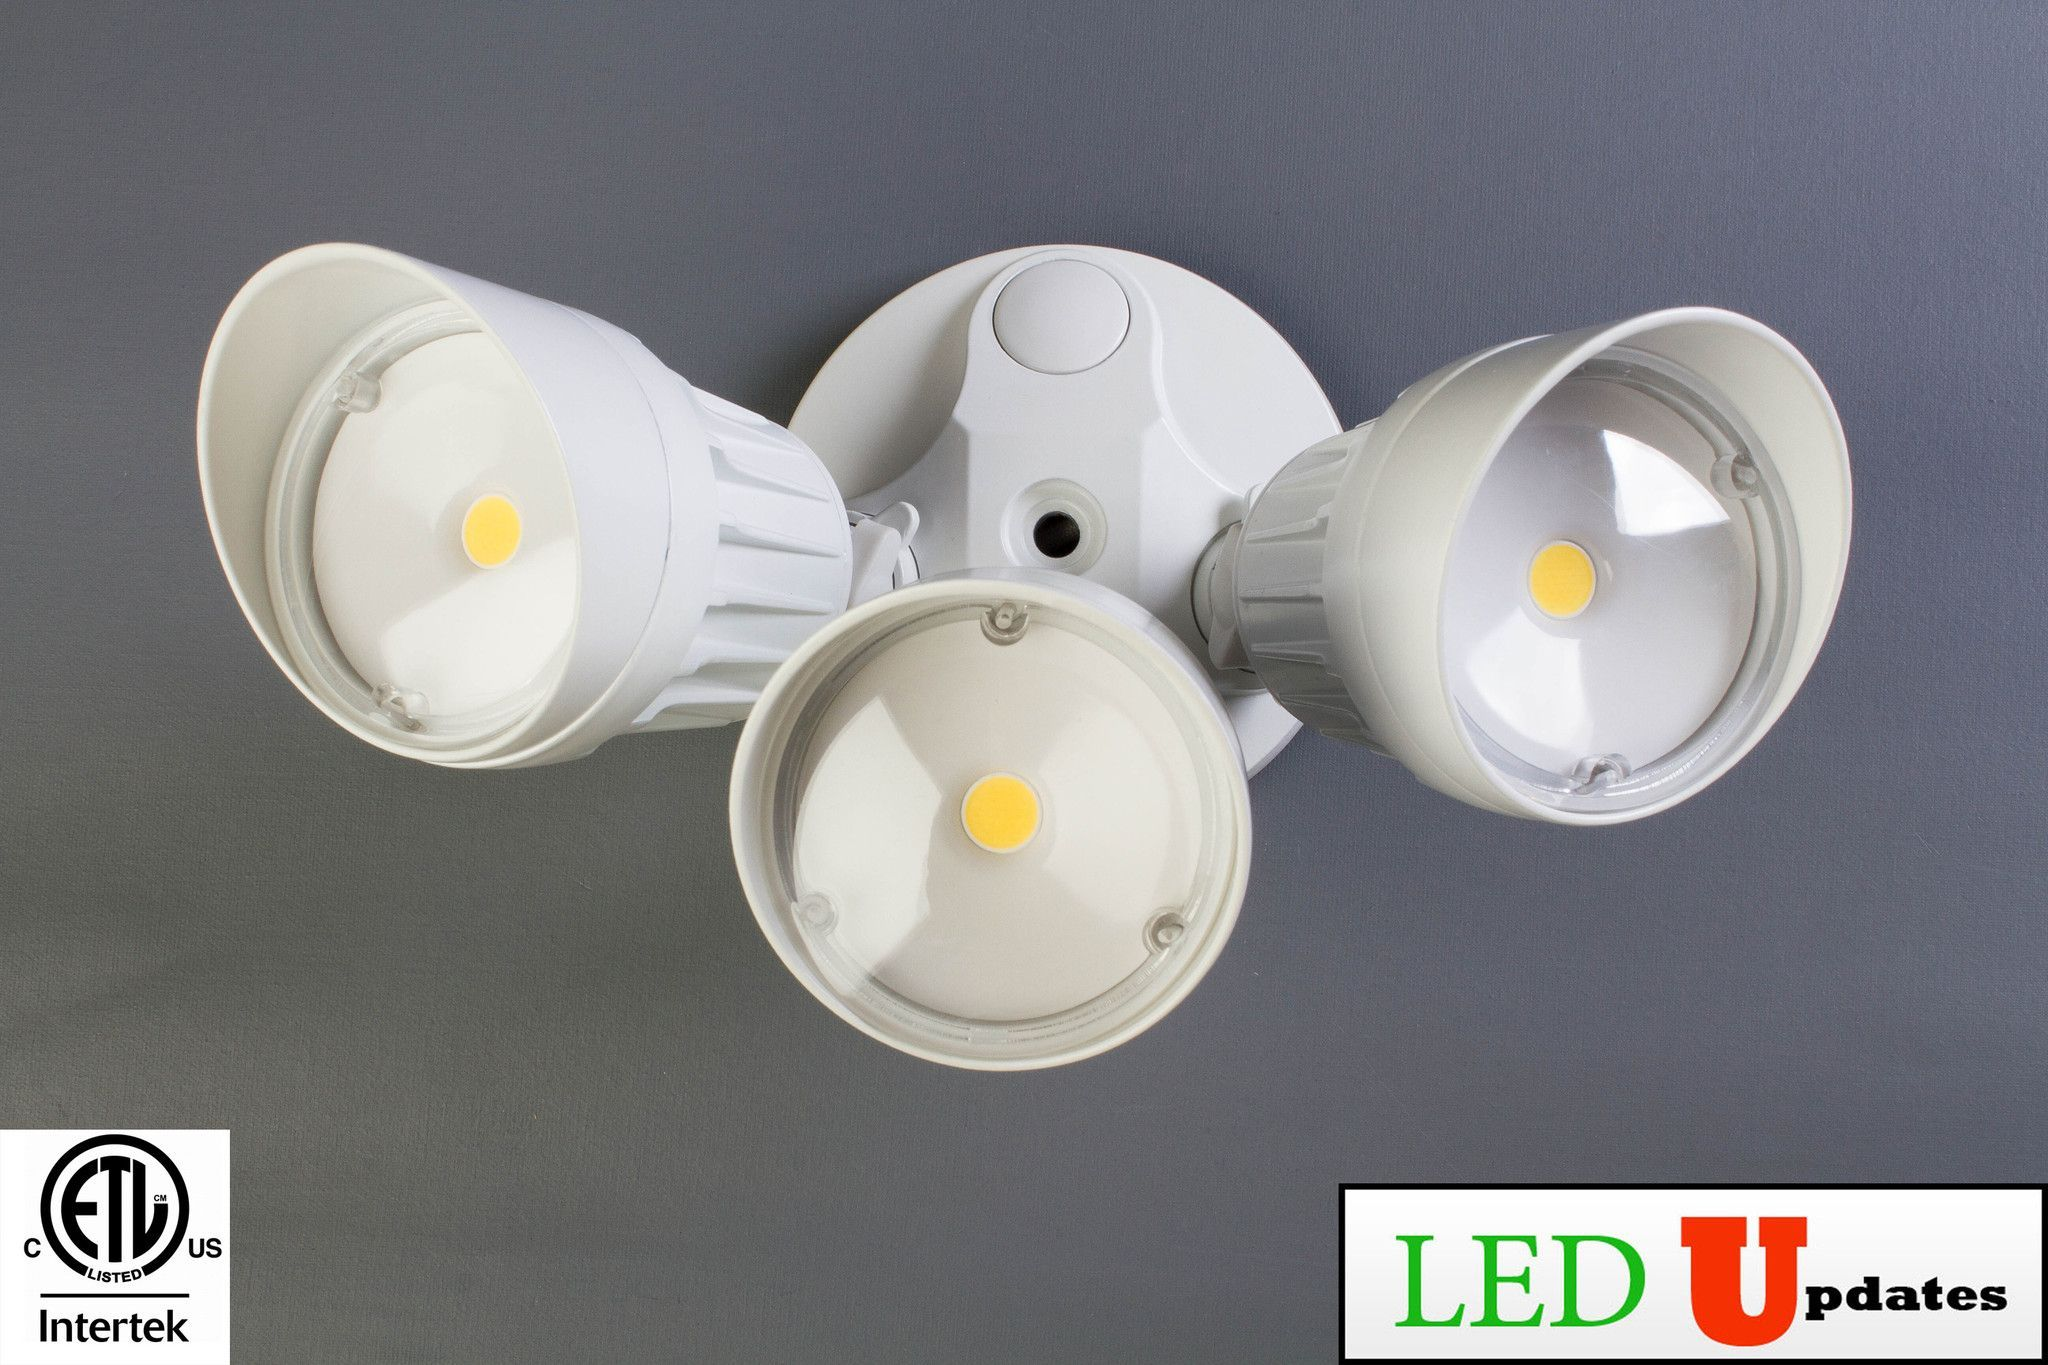 30W White Outdoor Security Wall Pack LED Flood light with 3 adjustable light head